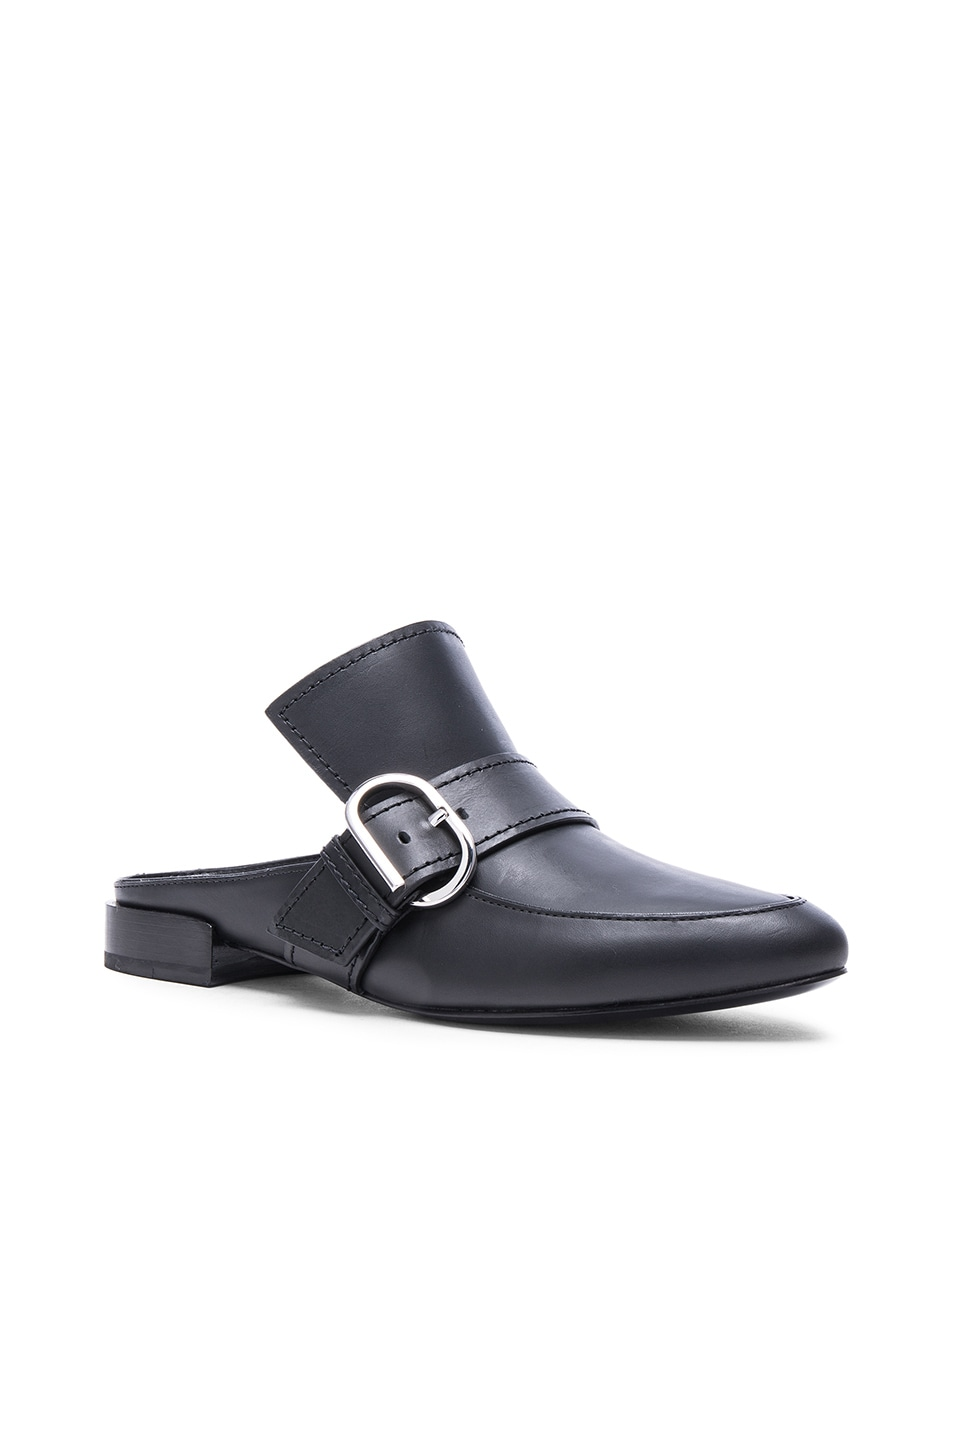 Image 2 of 3.1 phillip lim Louie Leather Mule Flats in Black